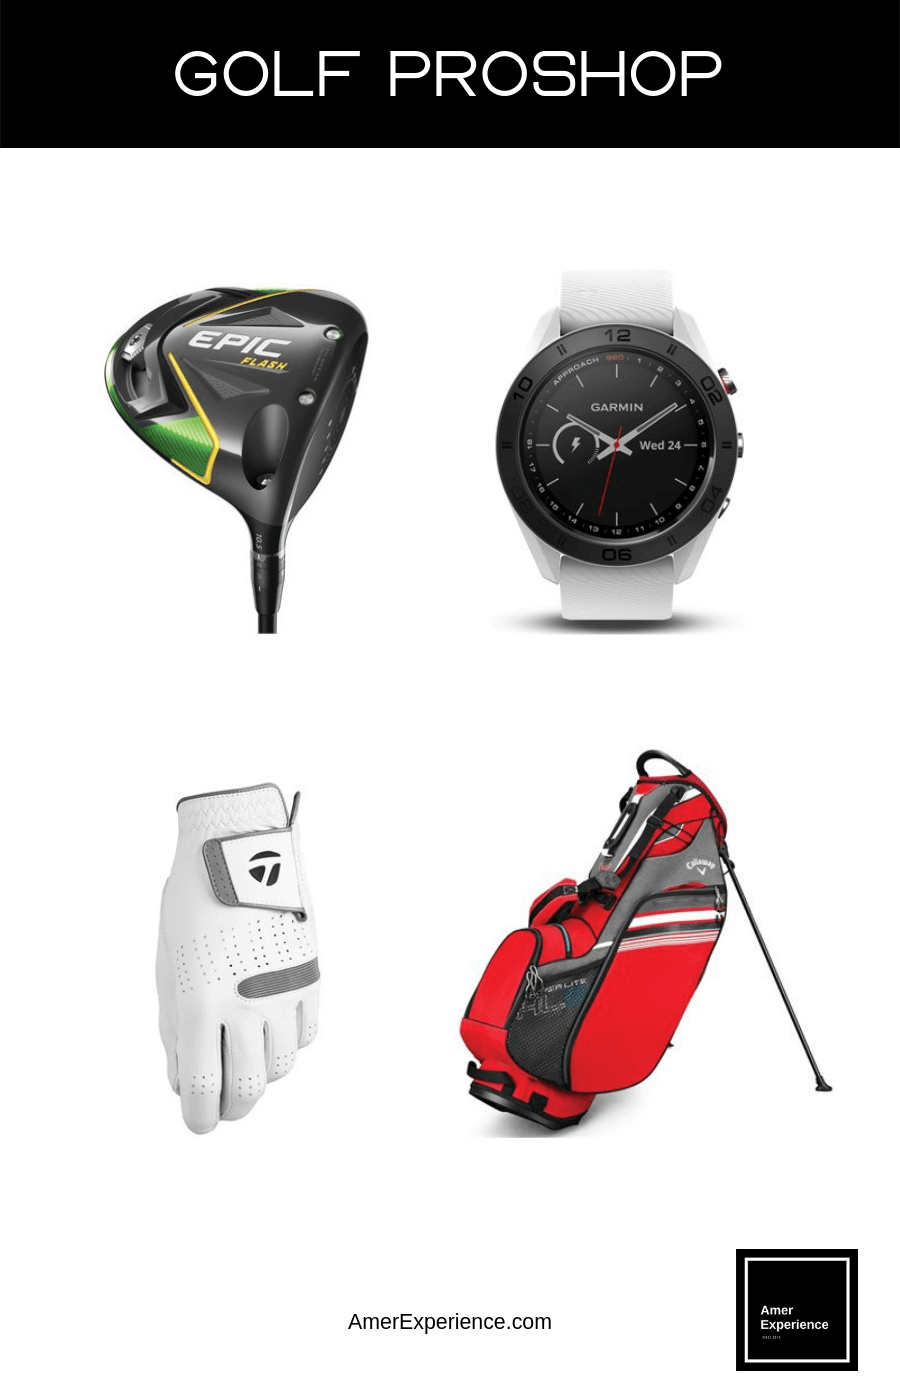 New and Used golf equipment for sale - Golf Pro Shop Online - What is the best website for used golf clubs